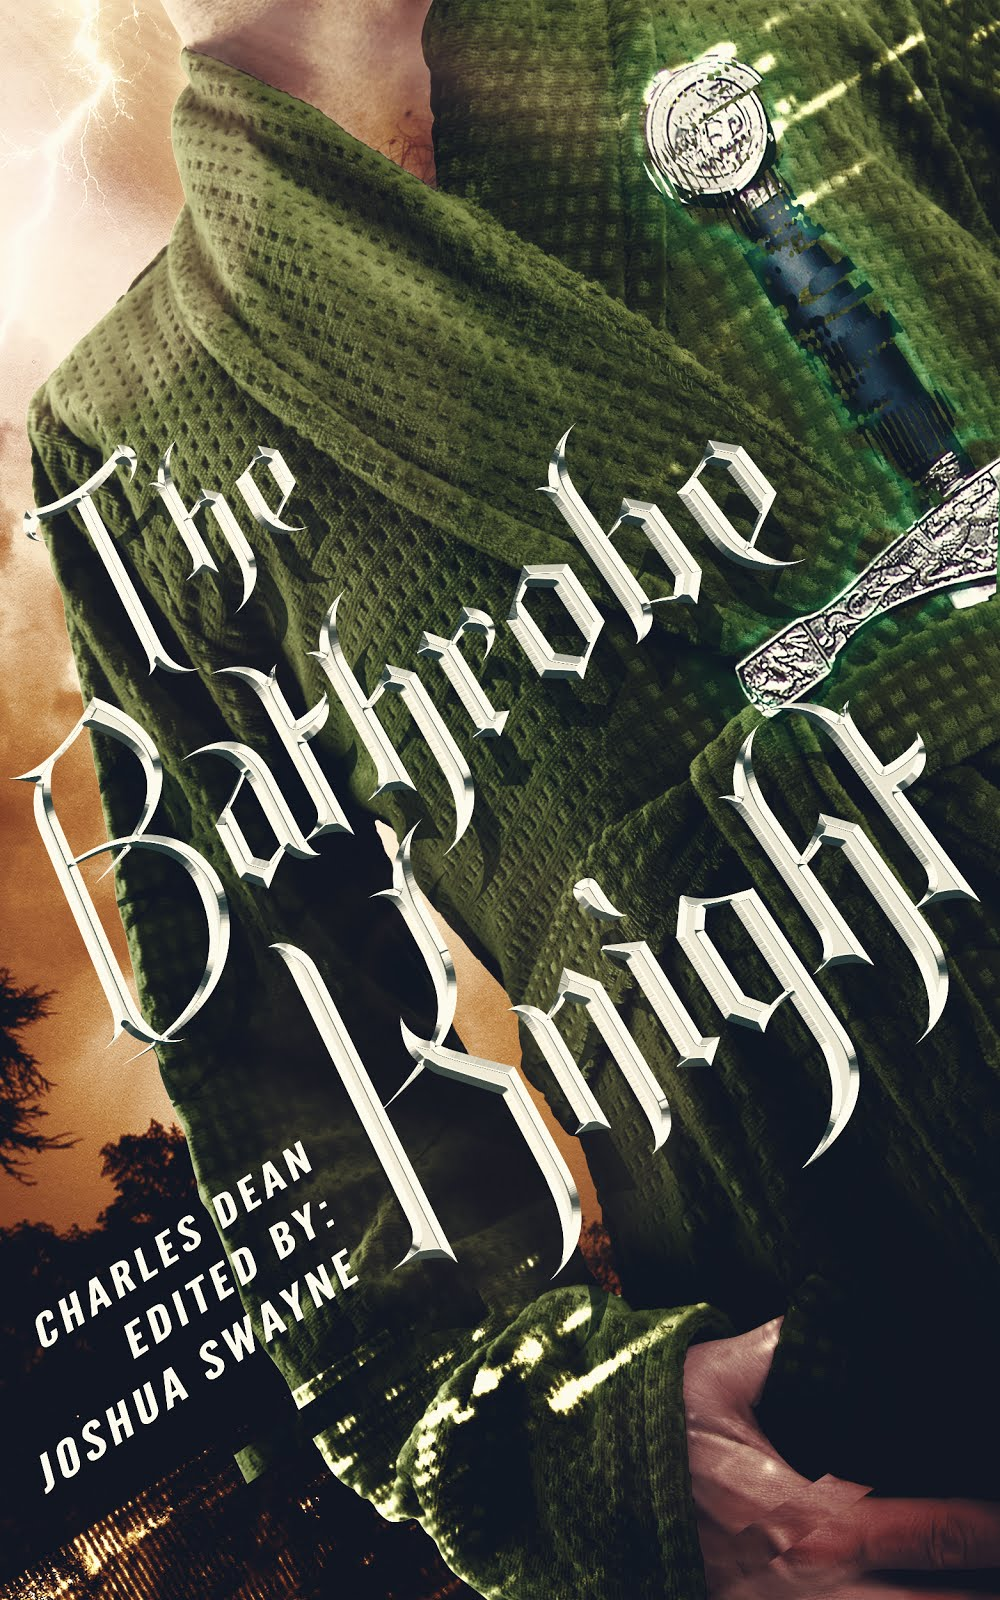 The Bathrobe Knight Volume 1!